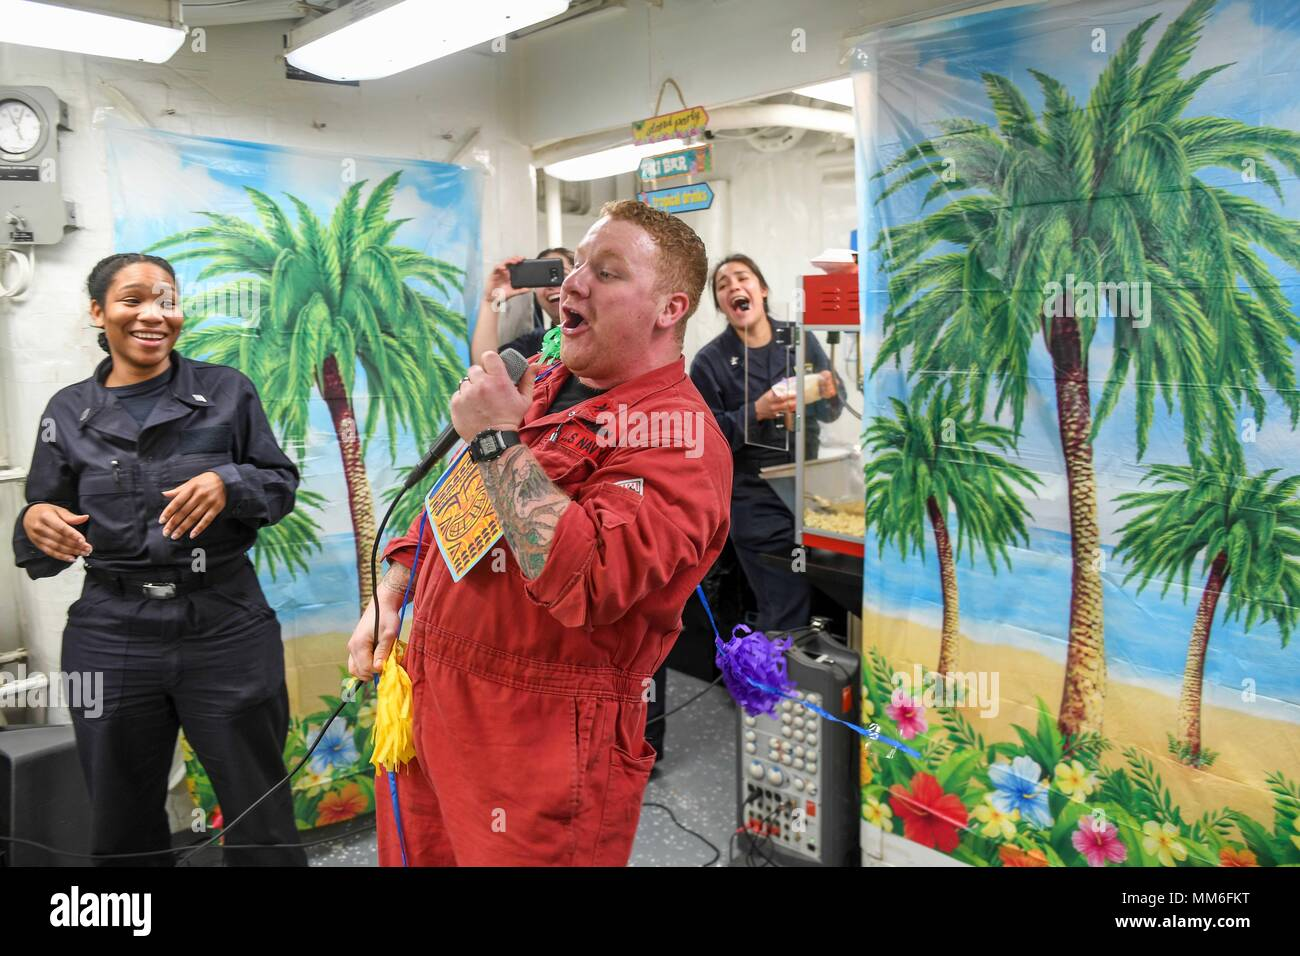 170907-N-GX781-1241 NORWEGIAN SEA (Sept. 7, 2017) - Electrician's Mate 2nd Class John DeCecco, from Harrison, New Jersey, sings during an open mic night held aboard the Arleigh Burke-class guided-missile destroyer USS James E. Williams (DDG 95), Sept. 7, 2017.  James E. Williams, home-ported in Norfolk, is on a routine deployment to the U.S. 6th Fleet area of operations in support of U.S. national security interests in Europe. (U.S. Navy photo by Mass Communication Specialist 3rd Class Colbey Livingston/ Released) - Stock Image